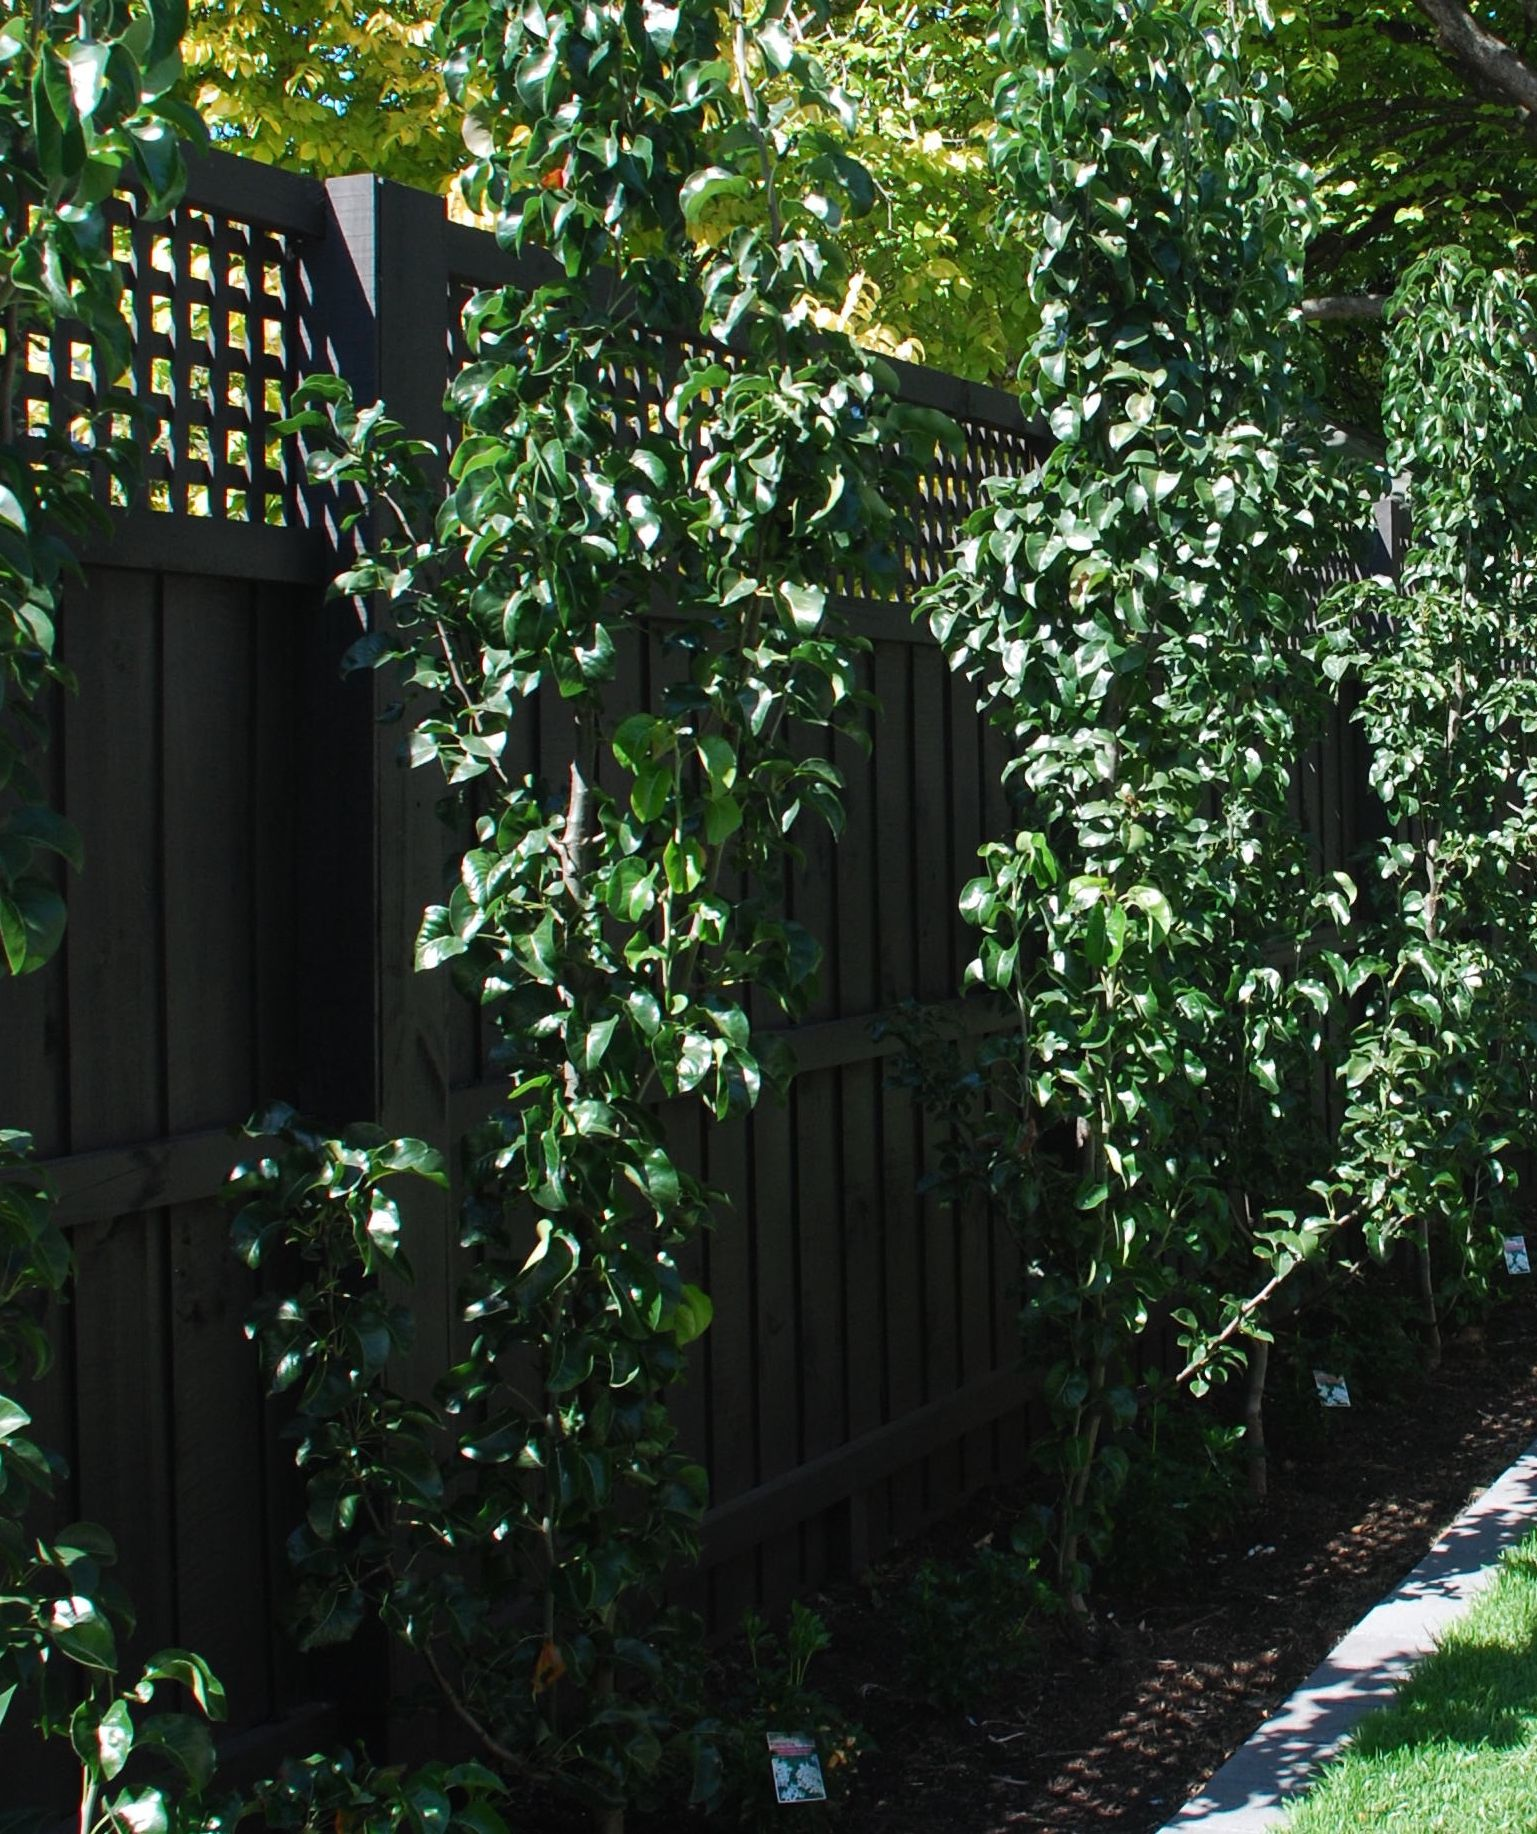 Dulux Namadji Paint Colour Outdoor Fencing Fence Paint House Painting